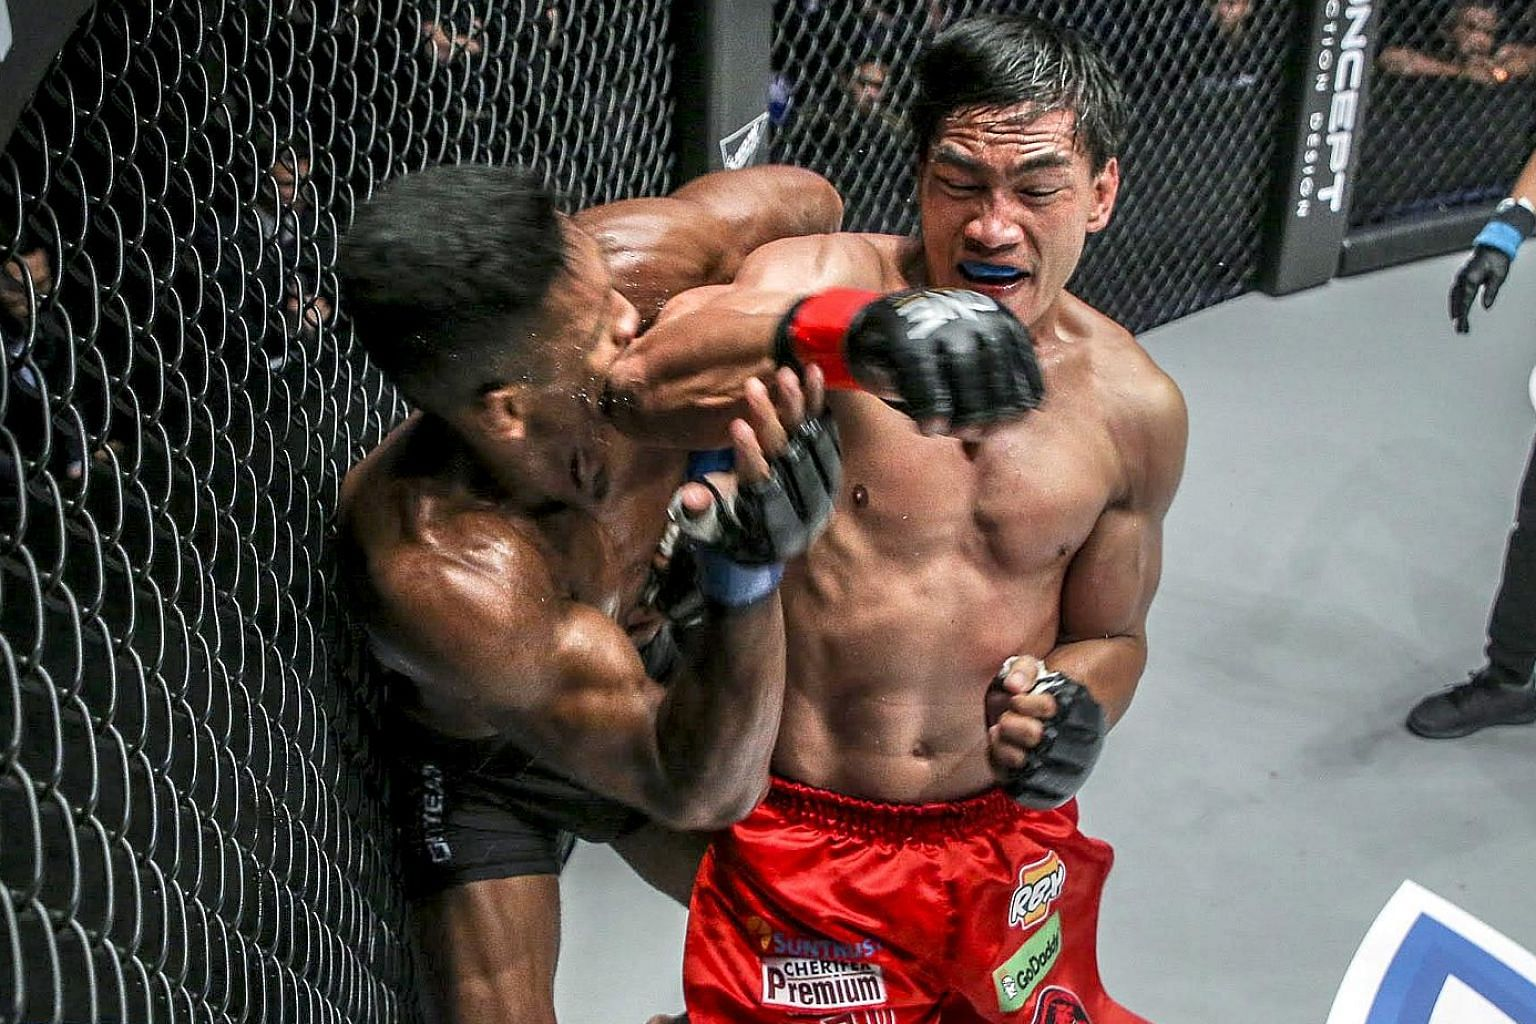 Singapore's Amir Khan is caught by a sharp elbow from Filipino Eduard Folayang, whose vast experience saw him triumph in the One Championship lightweight (up to 77kg) world title match at the Conquest of Champions event in Manila on Friday night.